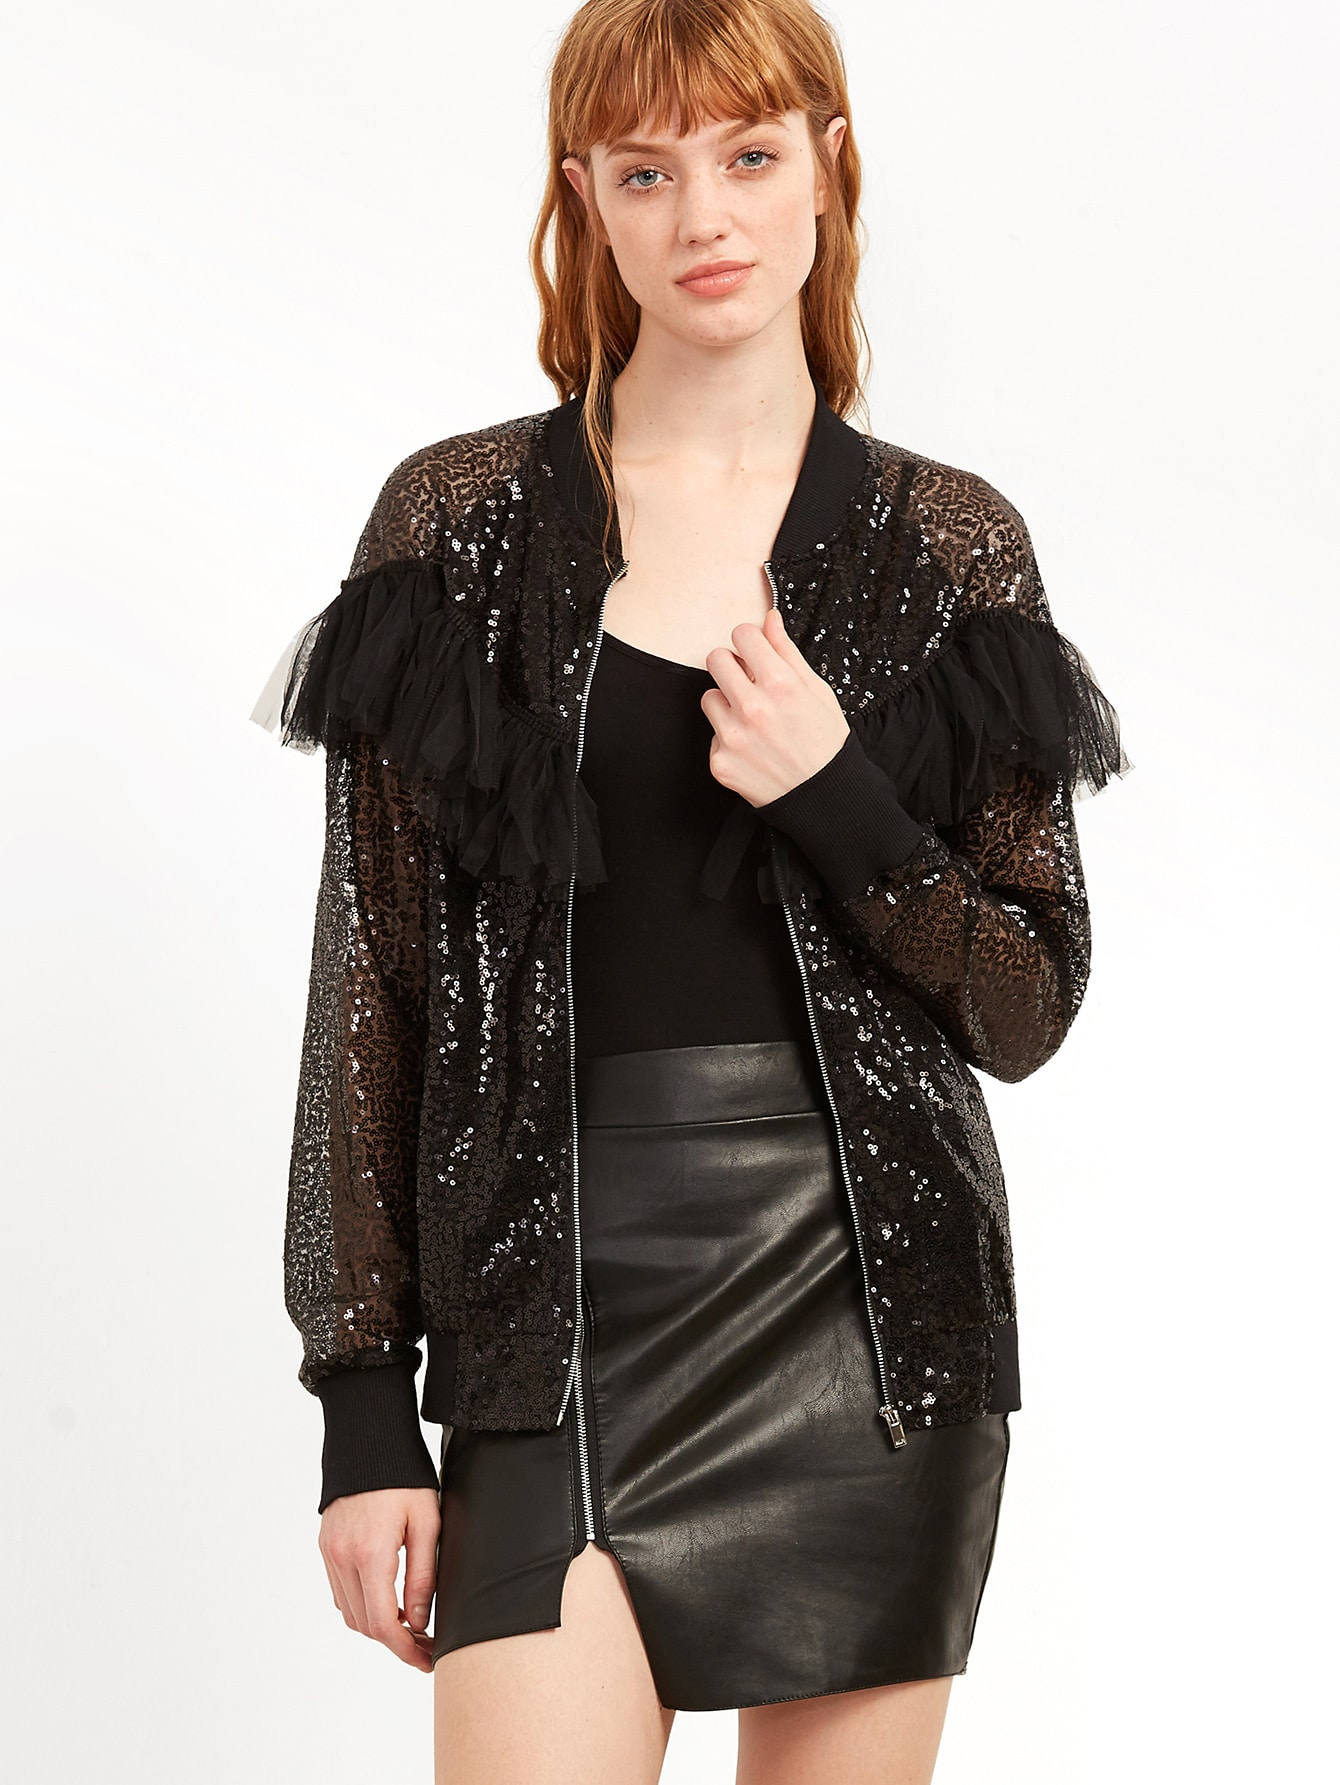 Black Ruffle Trim Sheer Embroidered Sequin Bomber JacketBlack Ruffle Trim Sheer Embroidered Sequin Bomber Jacket<br><br>color: Black<br>size: M,S,XS